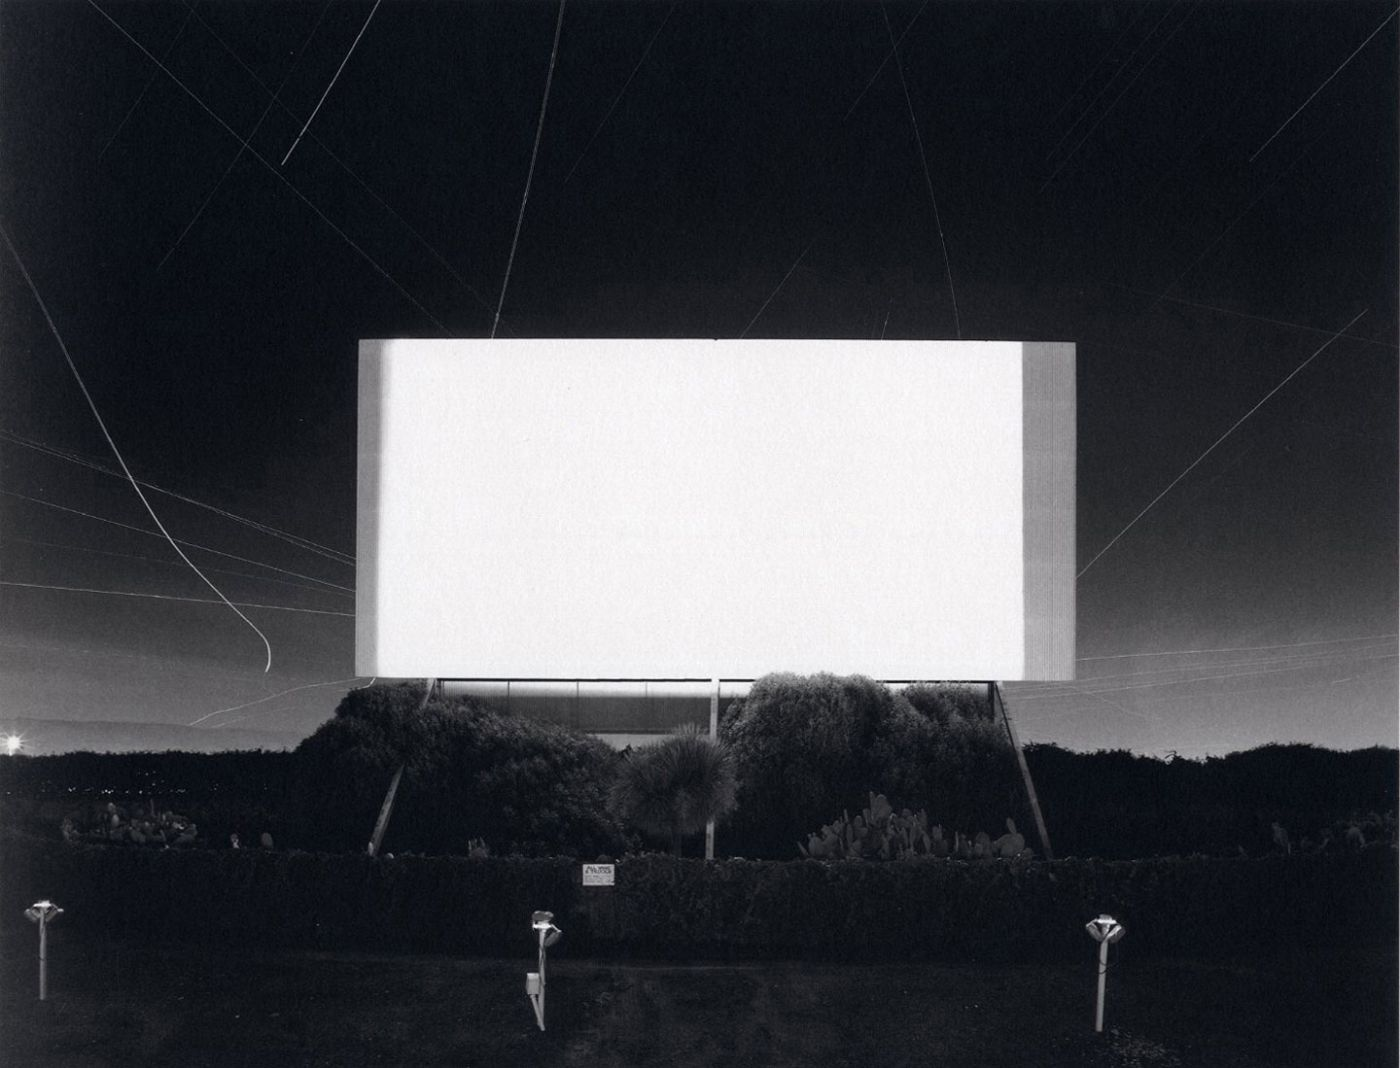 Hiroshi Sugimoto: Theaters [SIGNED in English with a calligraphy brush]